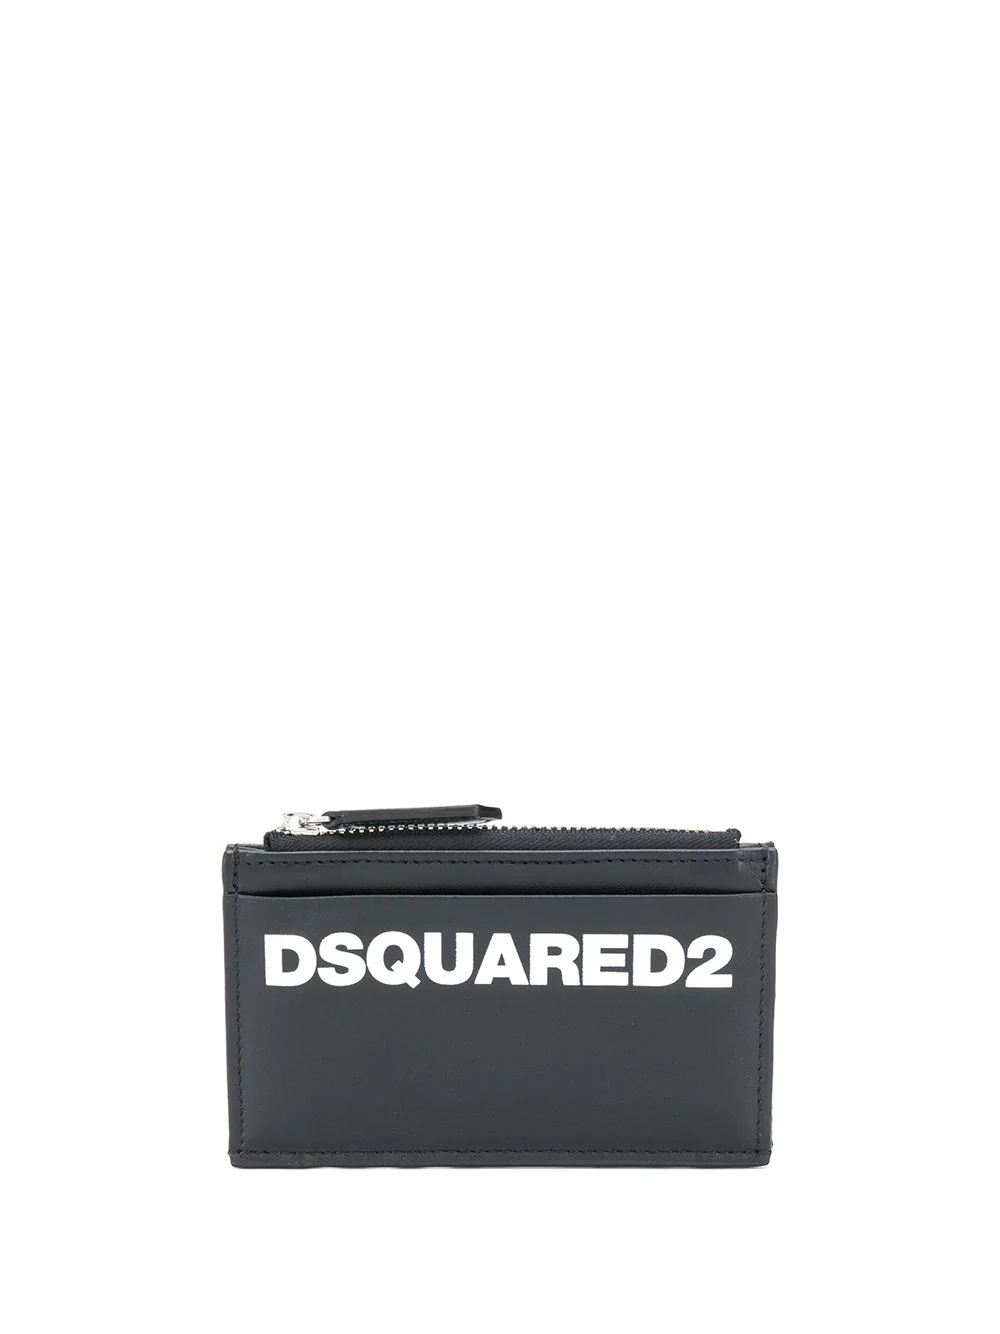 shop d squared2 wallets & card holders